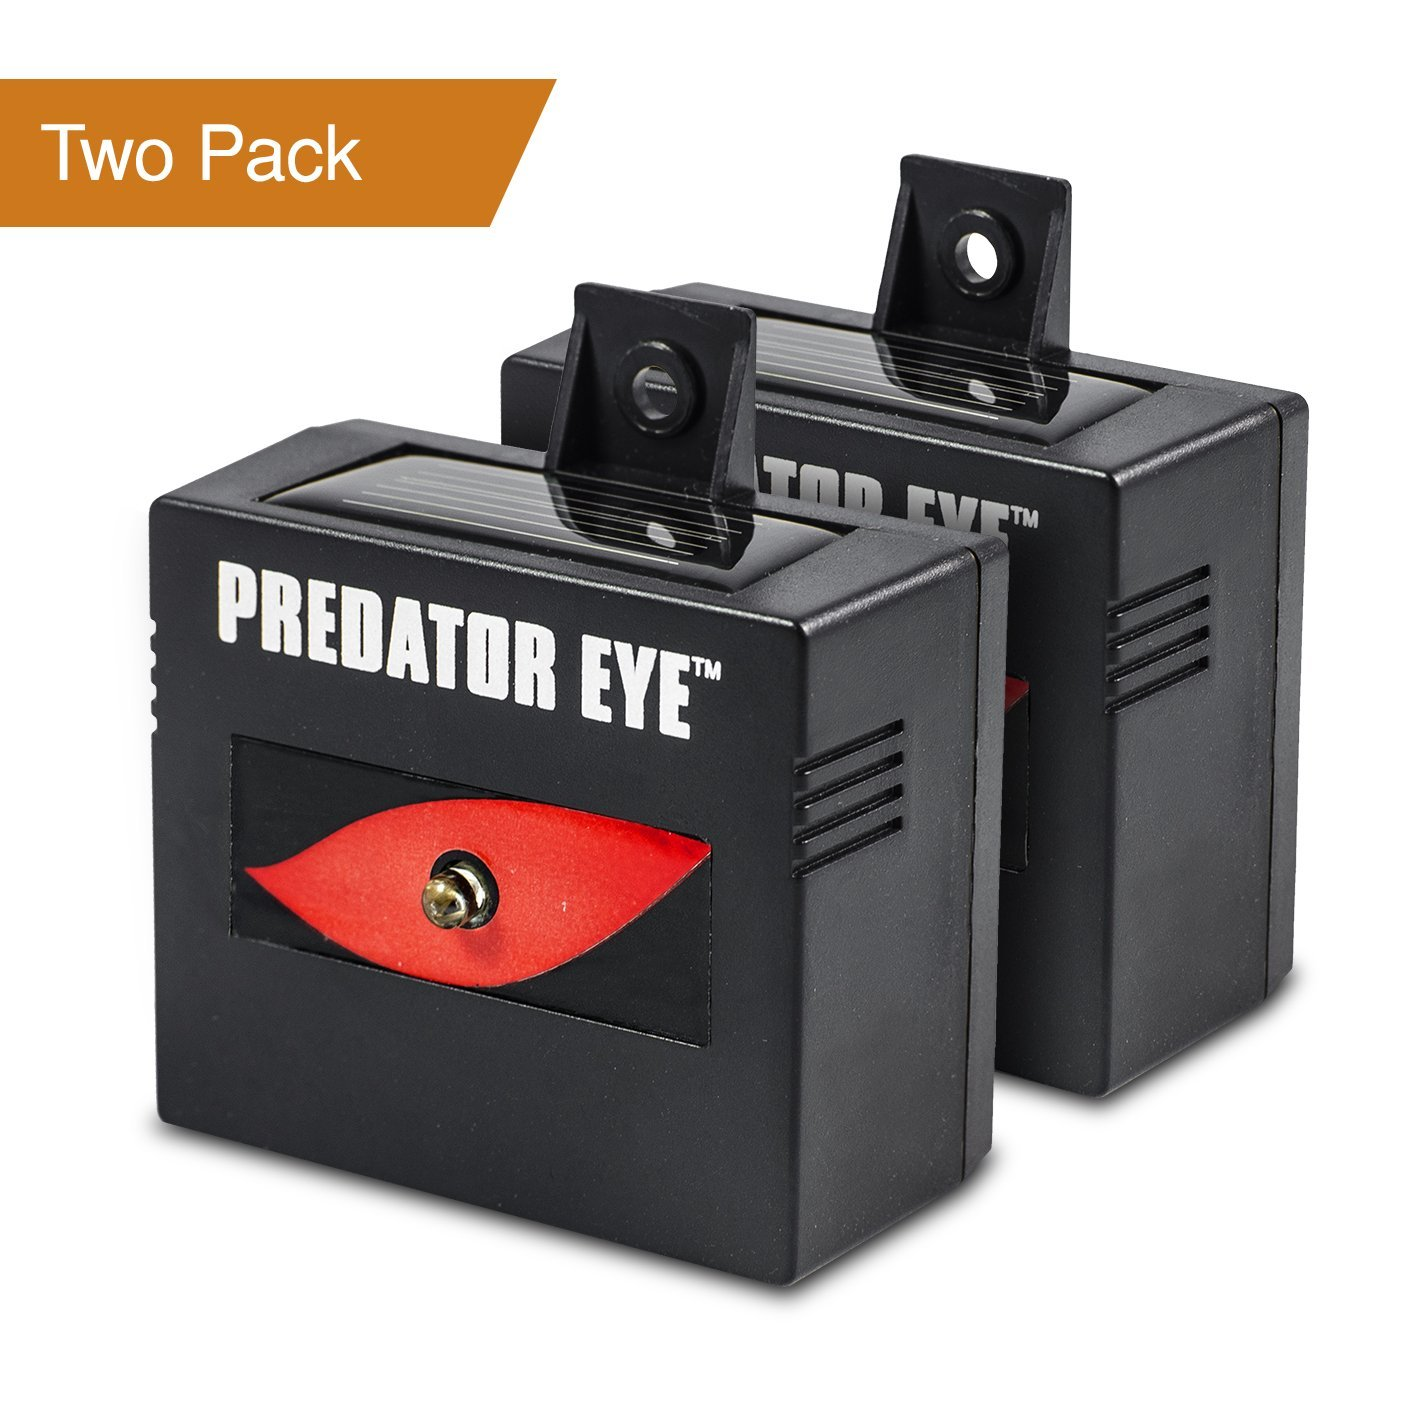 Aspectek l 4600sq ft l Predator Eye Nighttime Outdoor Solar Animal Repeller - 2 Pack, Waterproof, Repellent Predator Light Keeps Nocturnal Animals Away Such as Rat, Mouse, Cat, Bird, Raccoon.